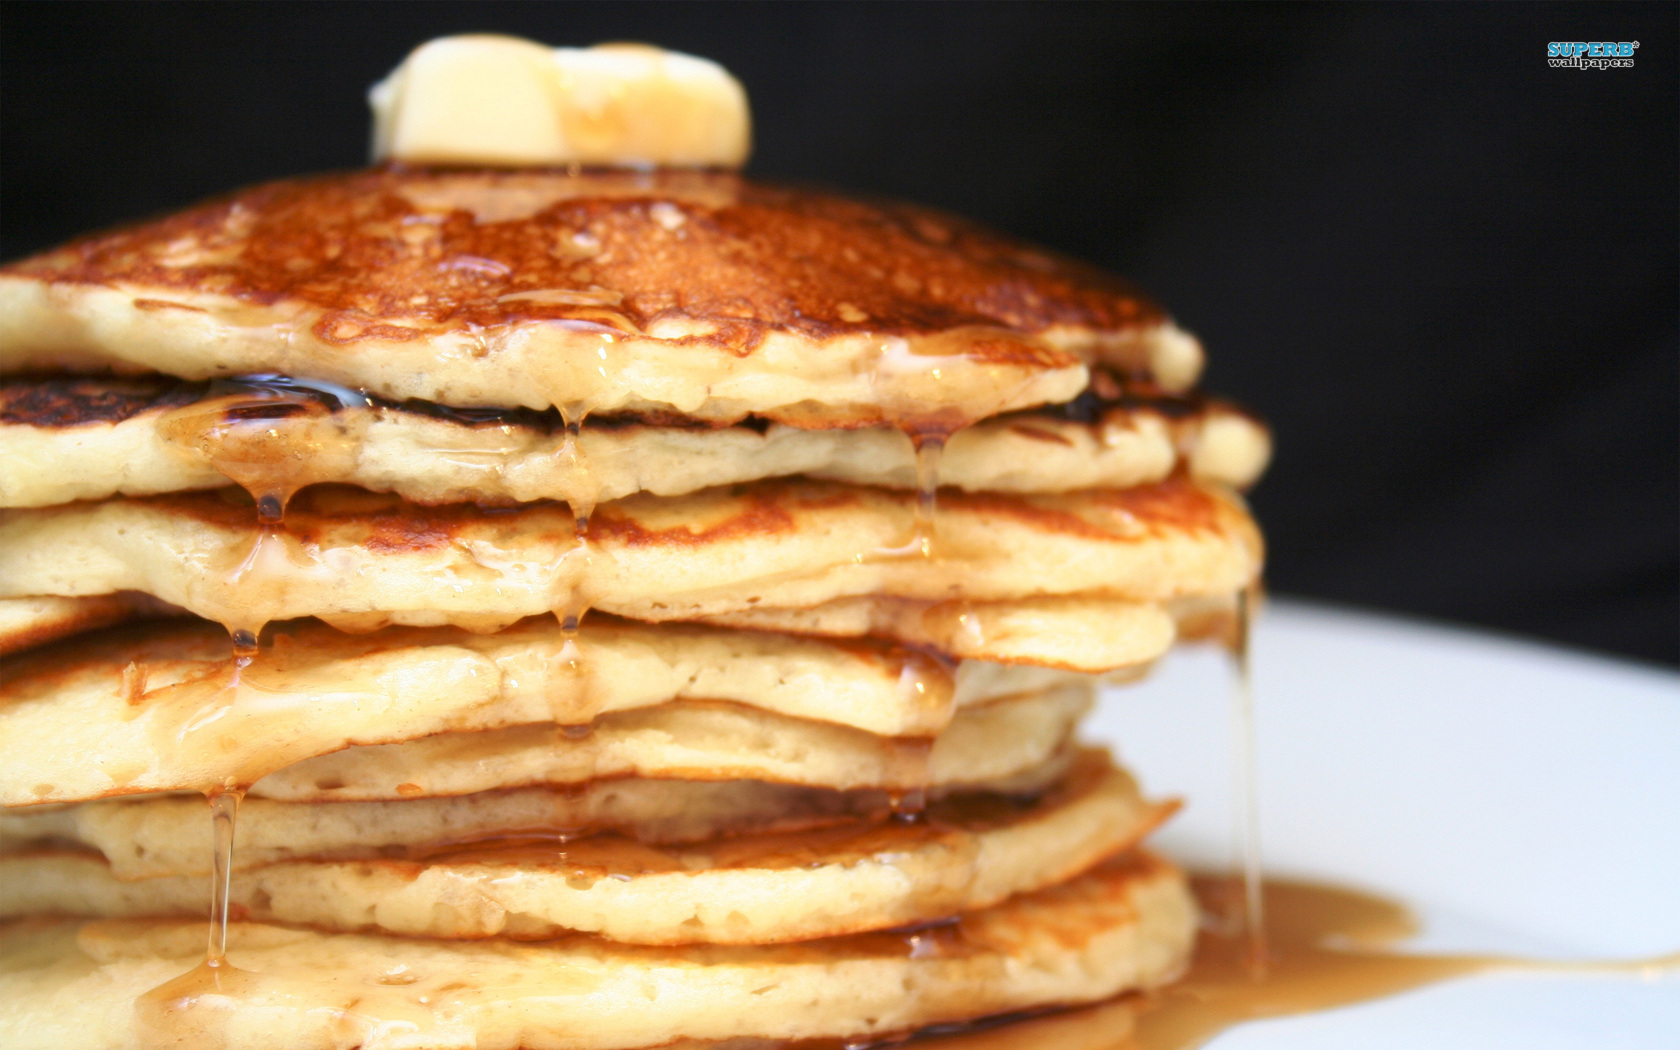 Pancakes wallpaper 1680x1050